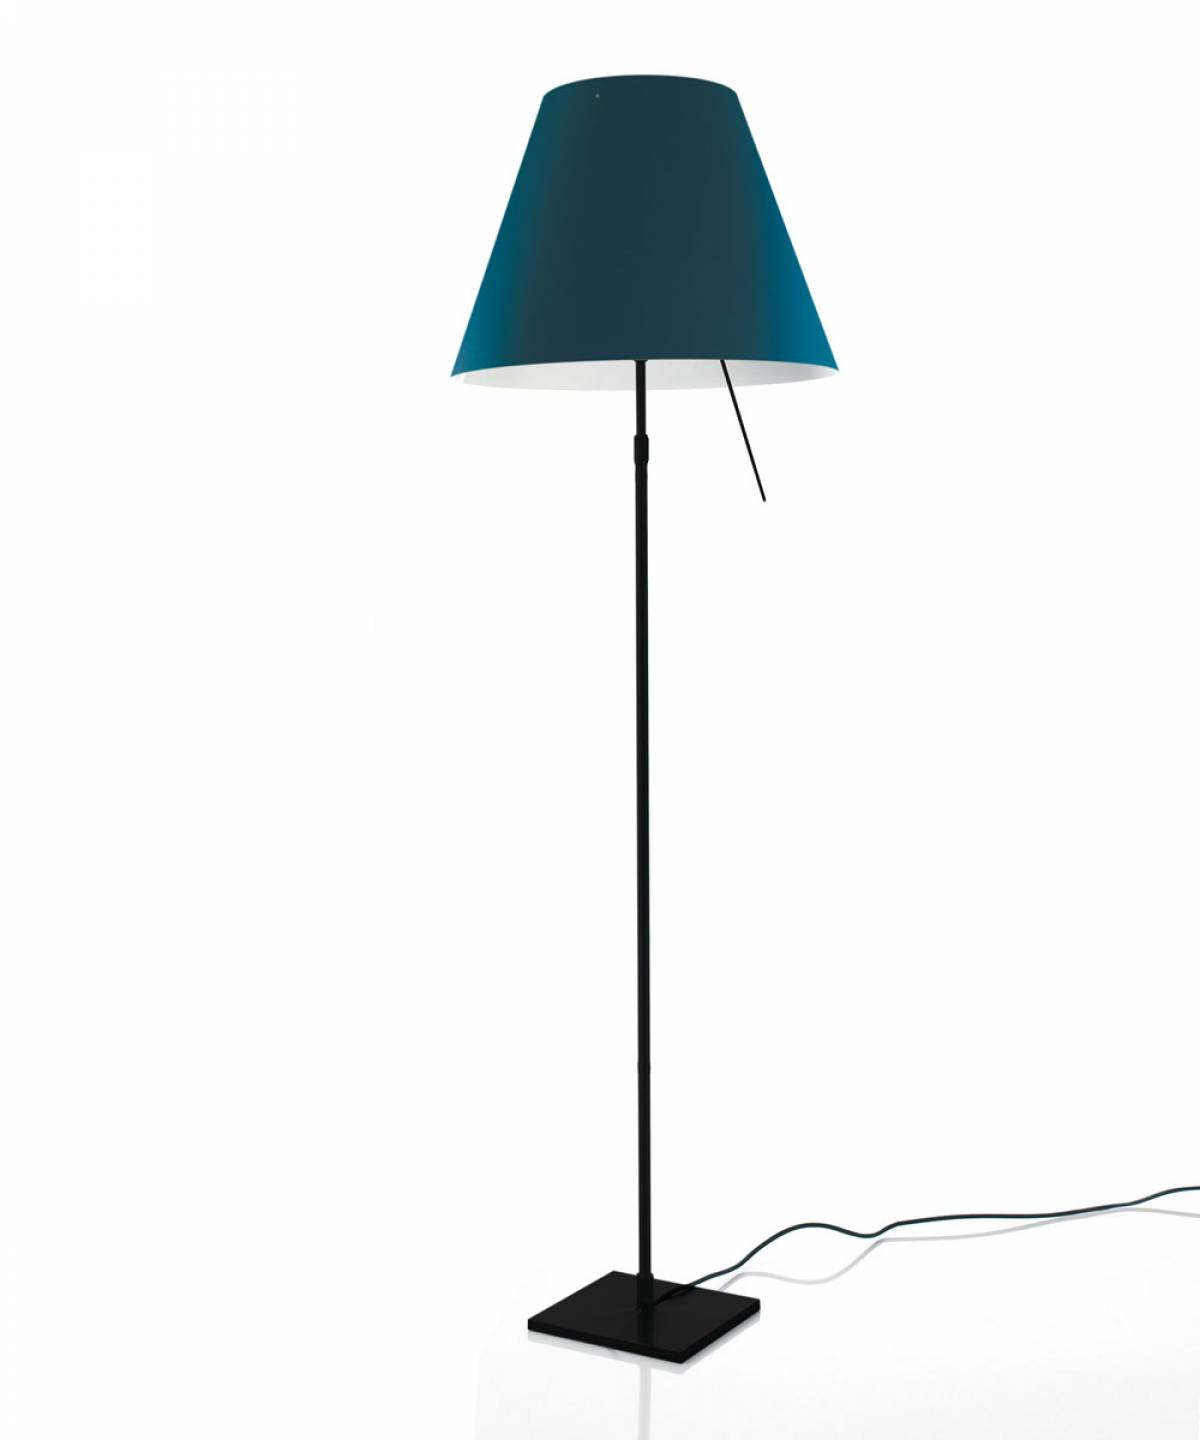 5 Costanza floor lamp Luceplan